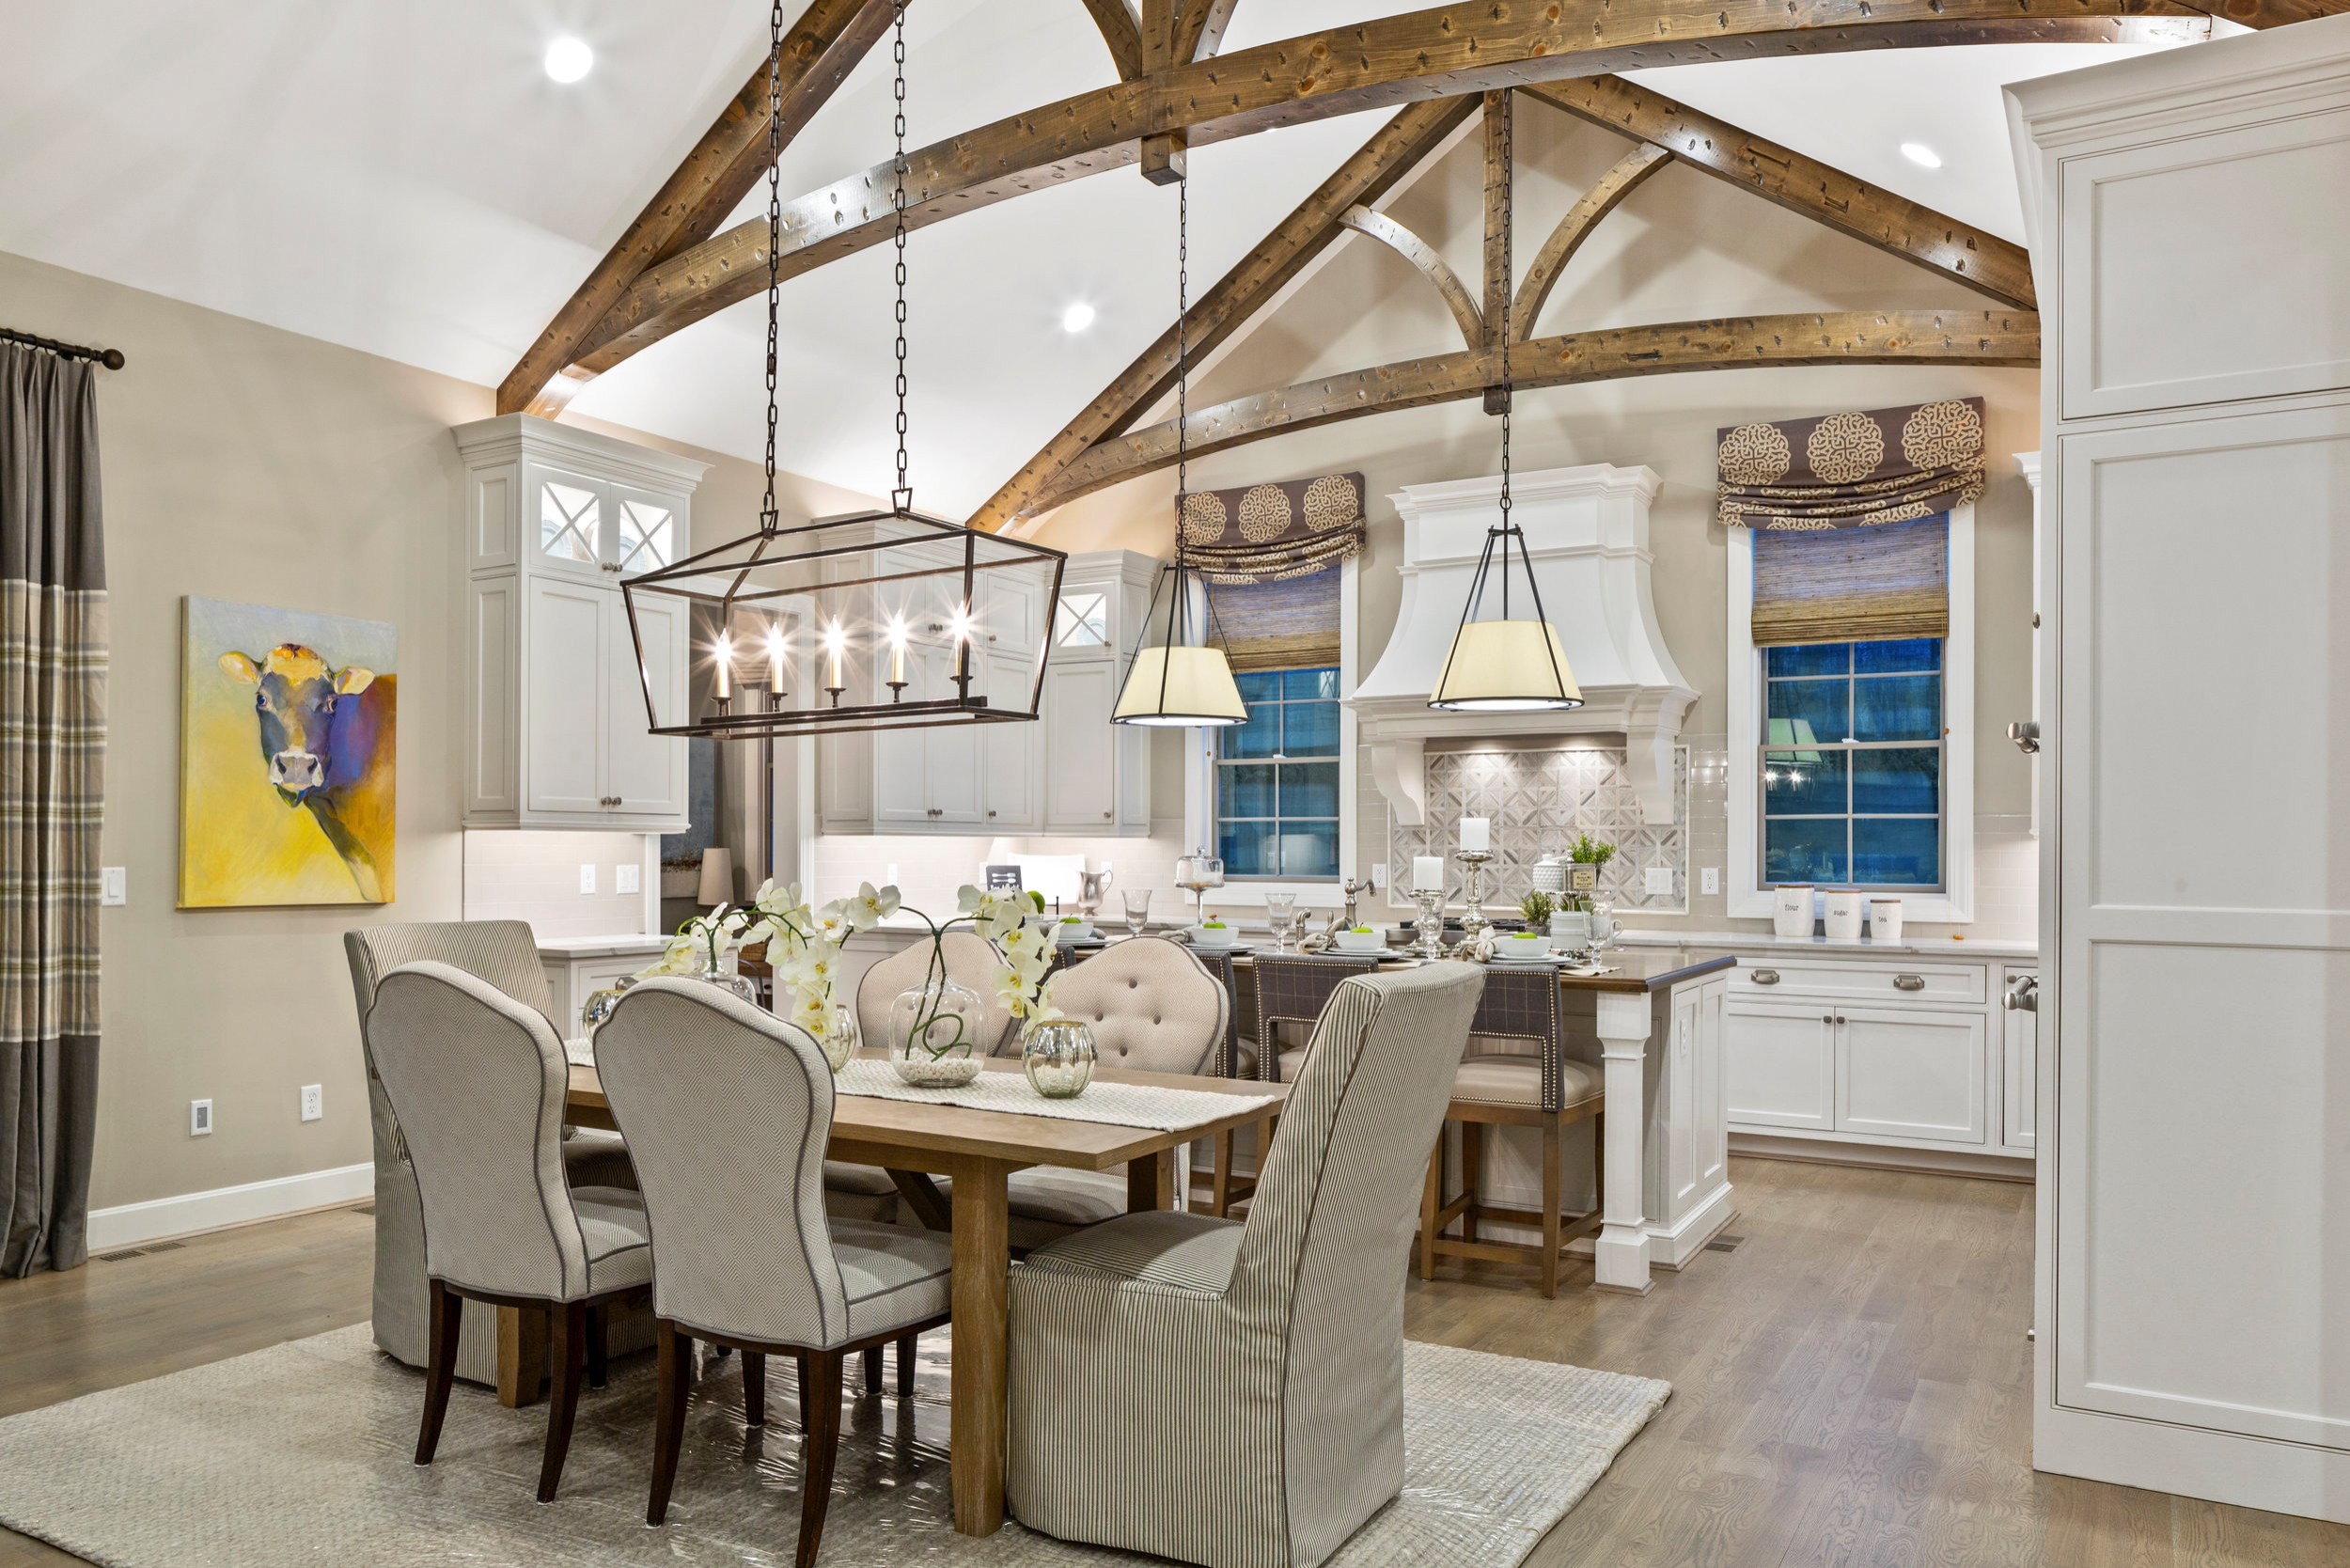 75 Beautiful Kitchen Dining Room Combo Pictures Ideas May 2021 Houzz